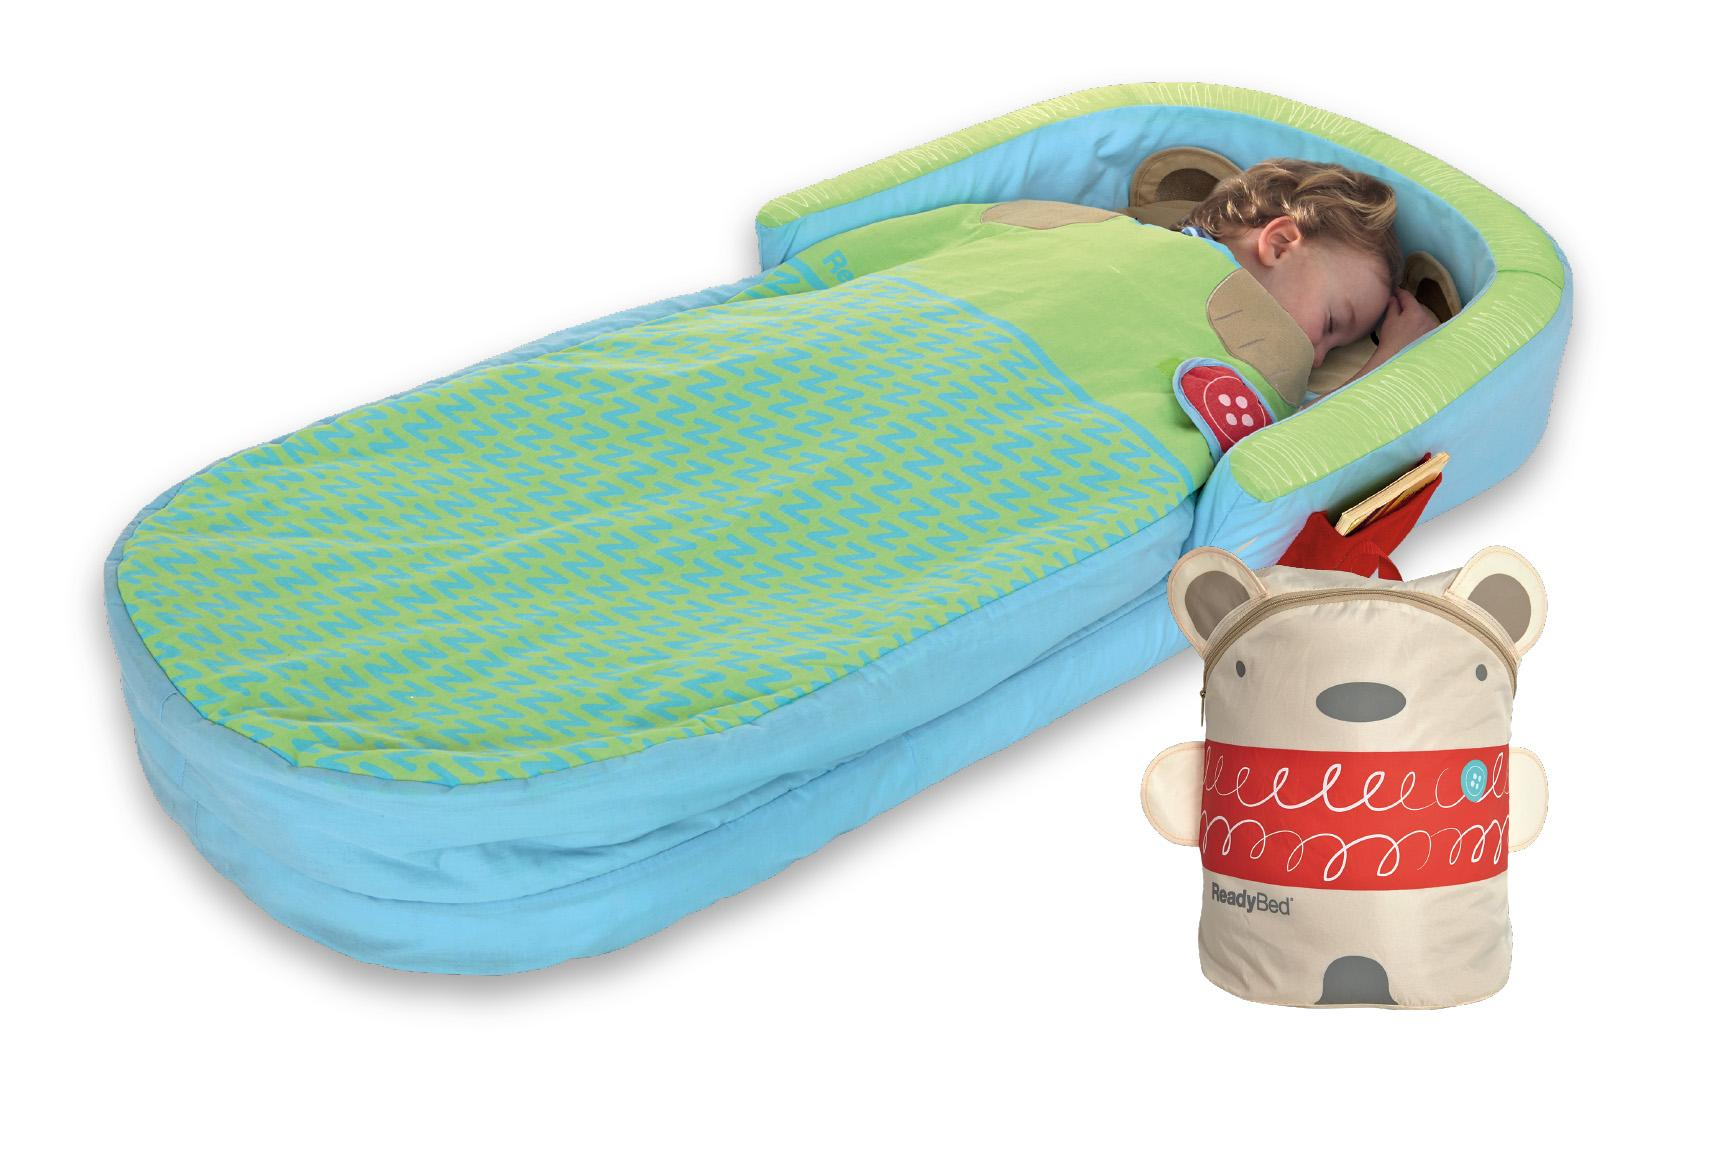 My-First-Ready-Bed-toddler-bed